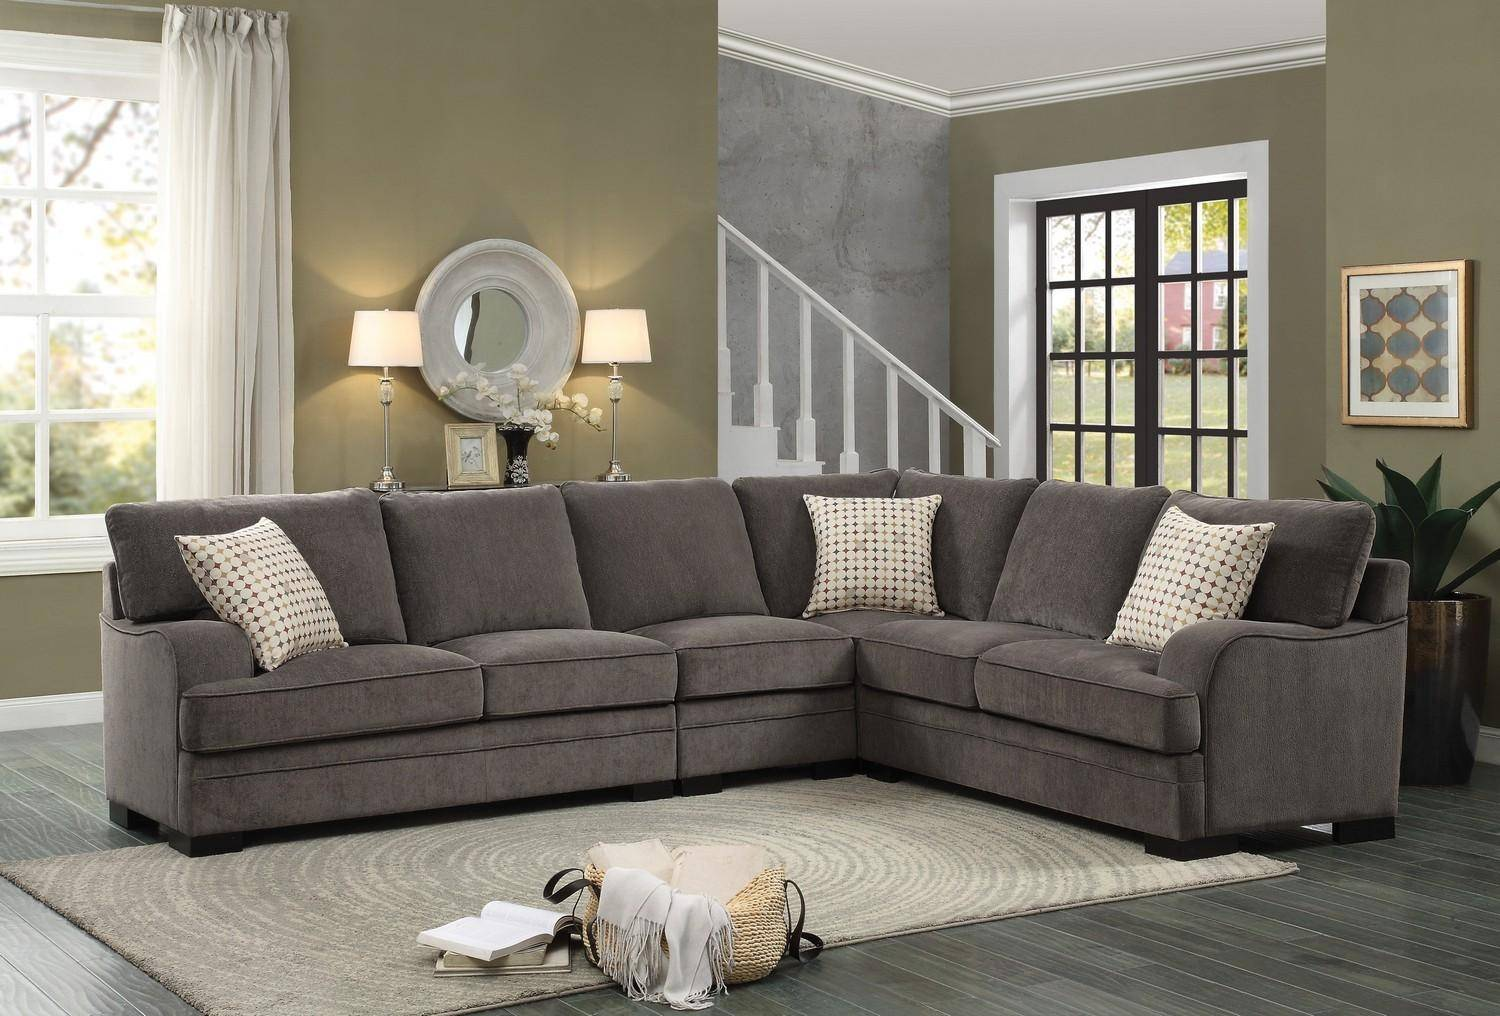 Homelegance 8335 Alamosa Brown Chenille Cover Sectional Sofa Set W